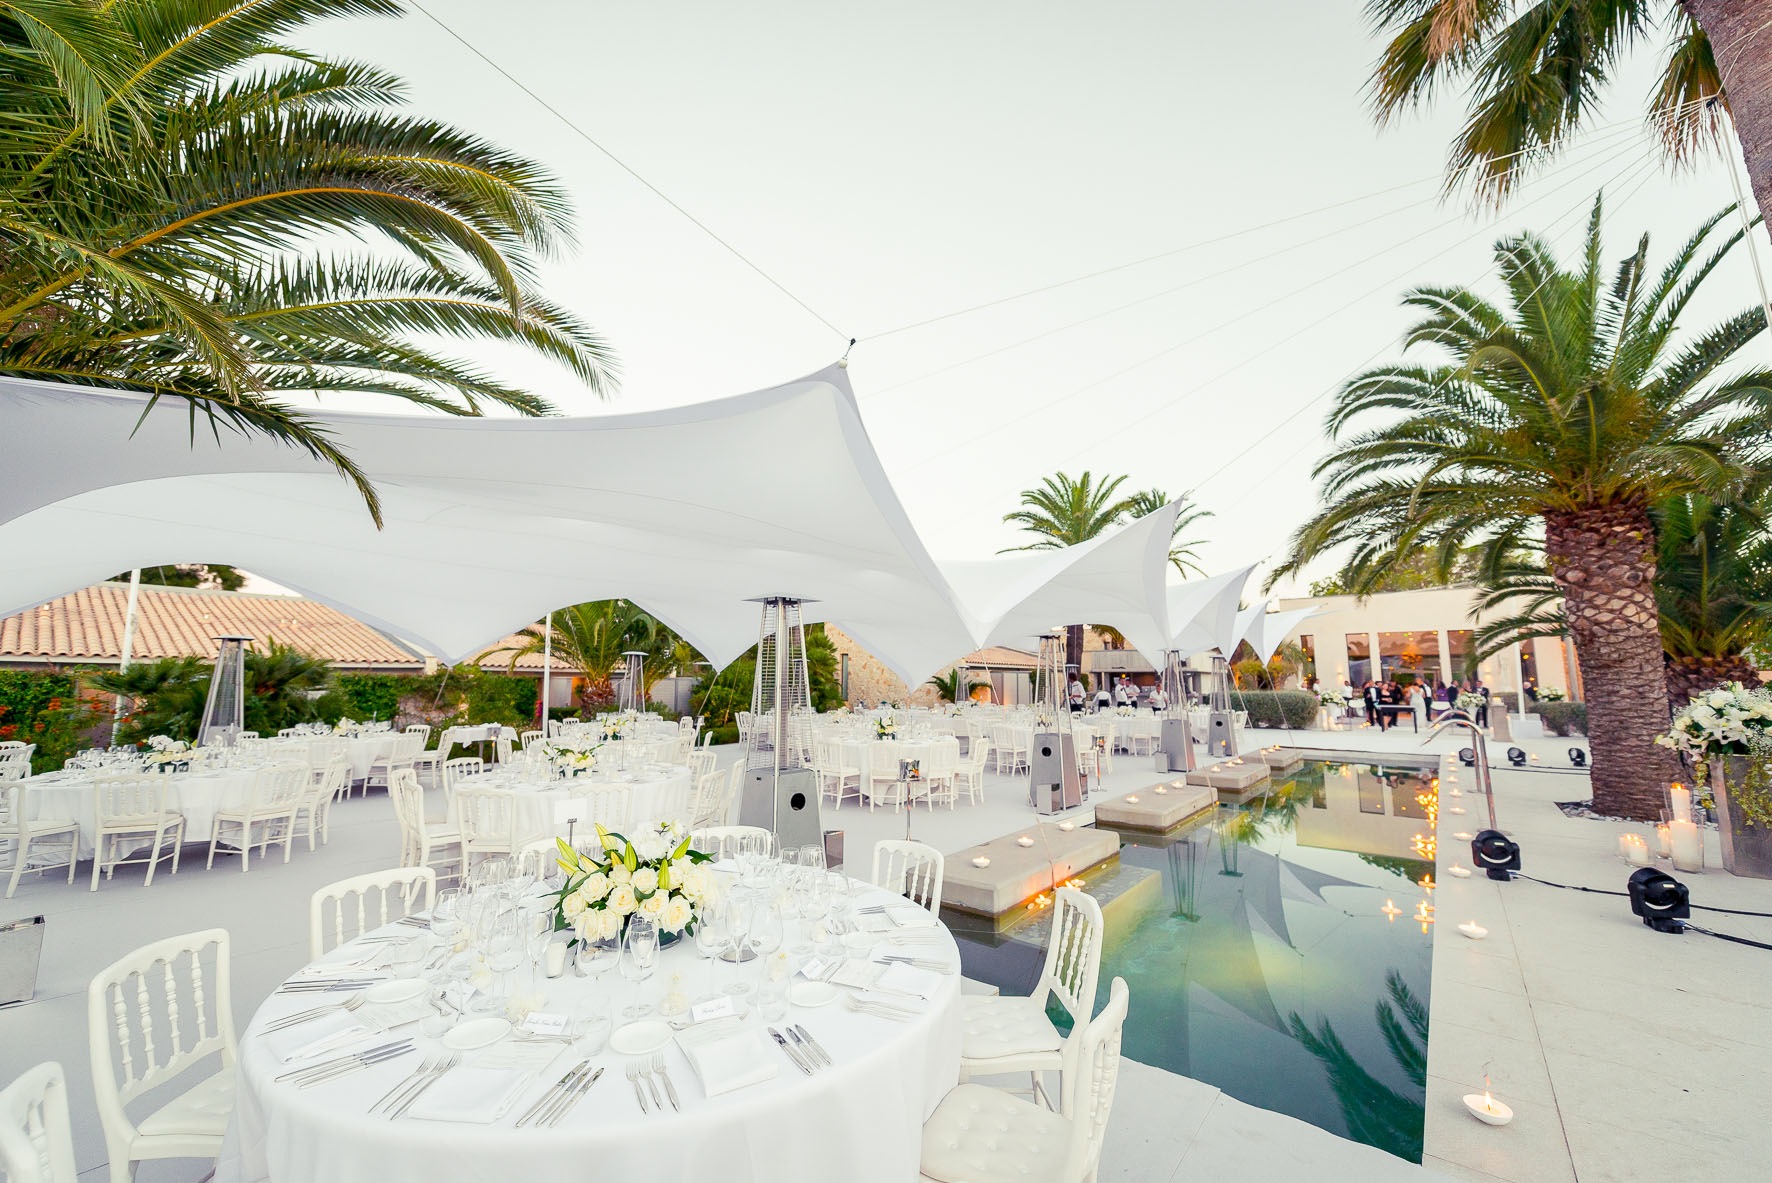 Wedding Lara & Vatche at Saint-Tropez, September 13th, 2014